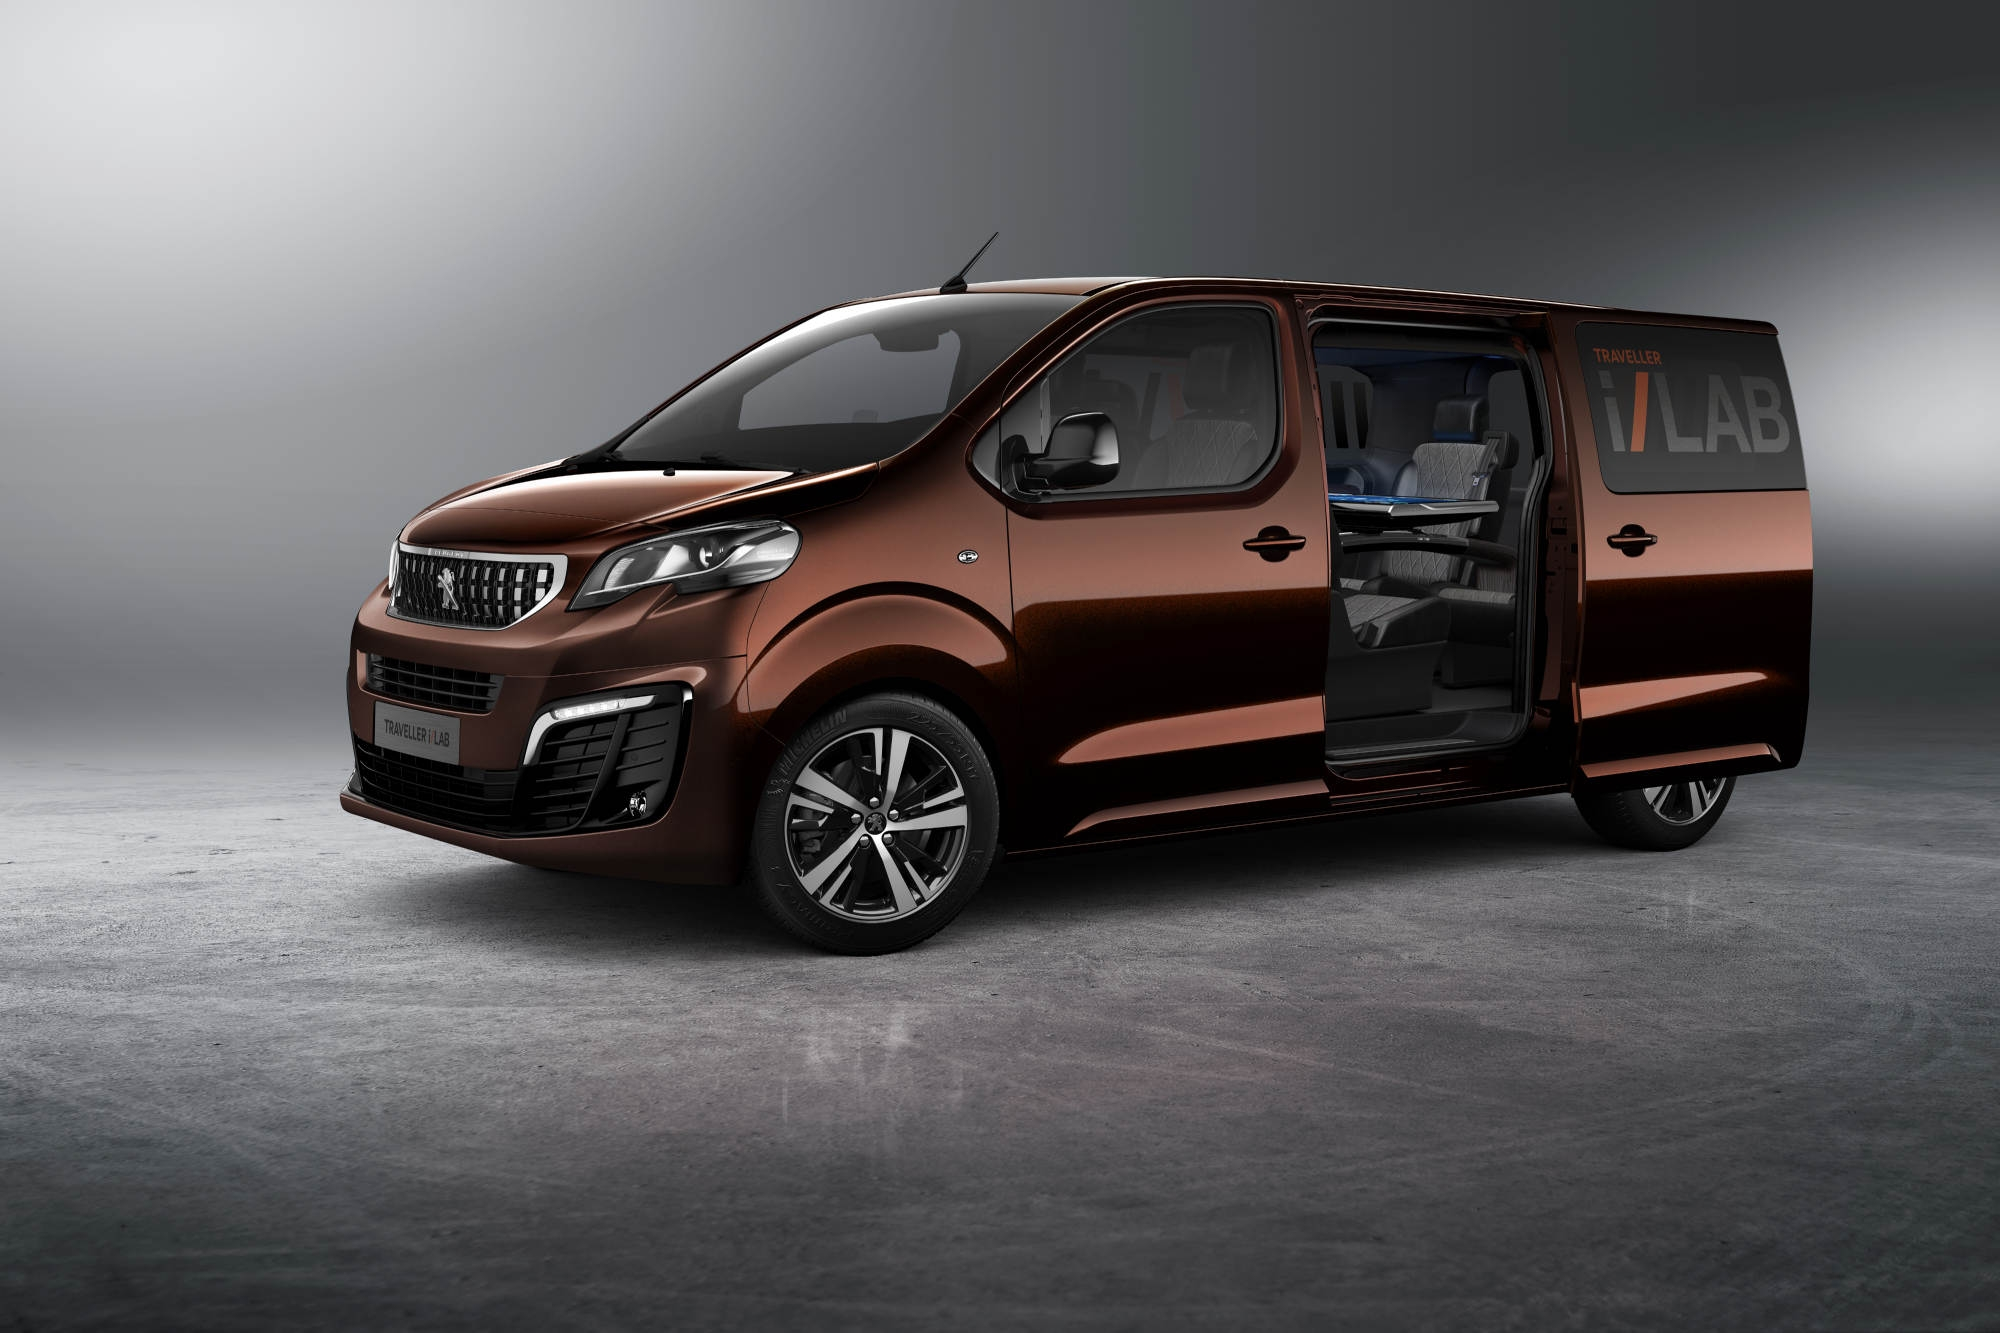 salon de gen ve 2016 peugeot traveller i lab concept. Black Bedroom Furniture Sets. Home Design Ideas